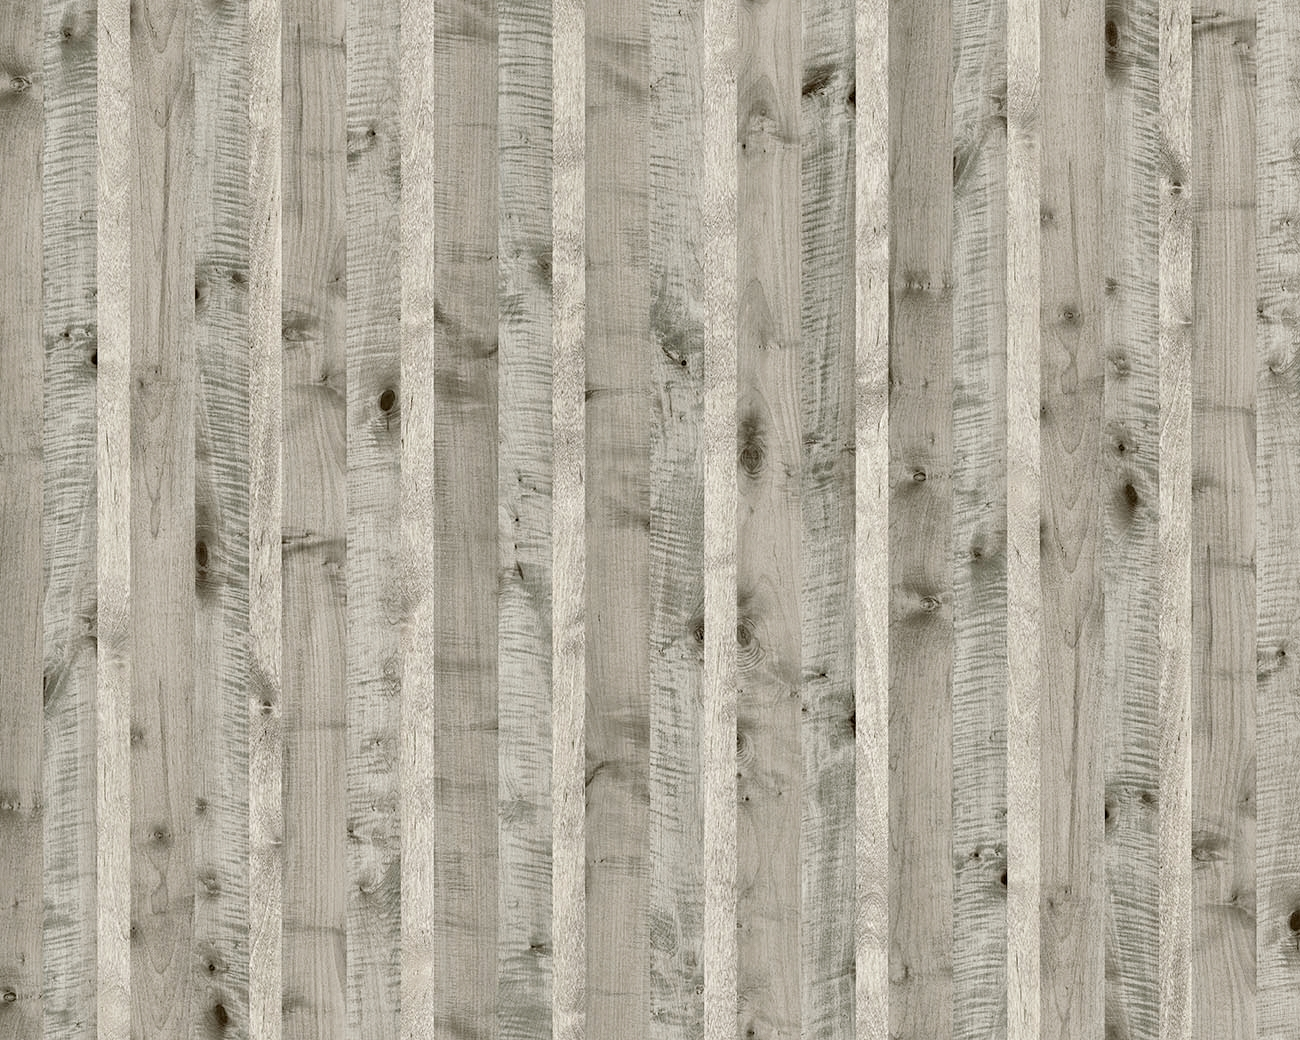 Reclaimed Victorian Gray Full Pattern Swatch